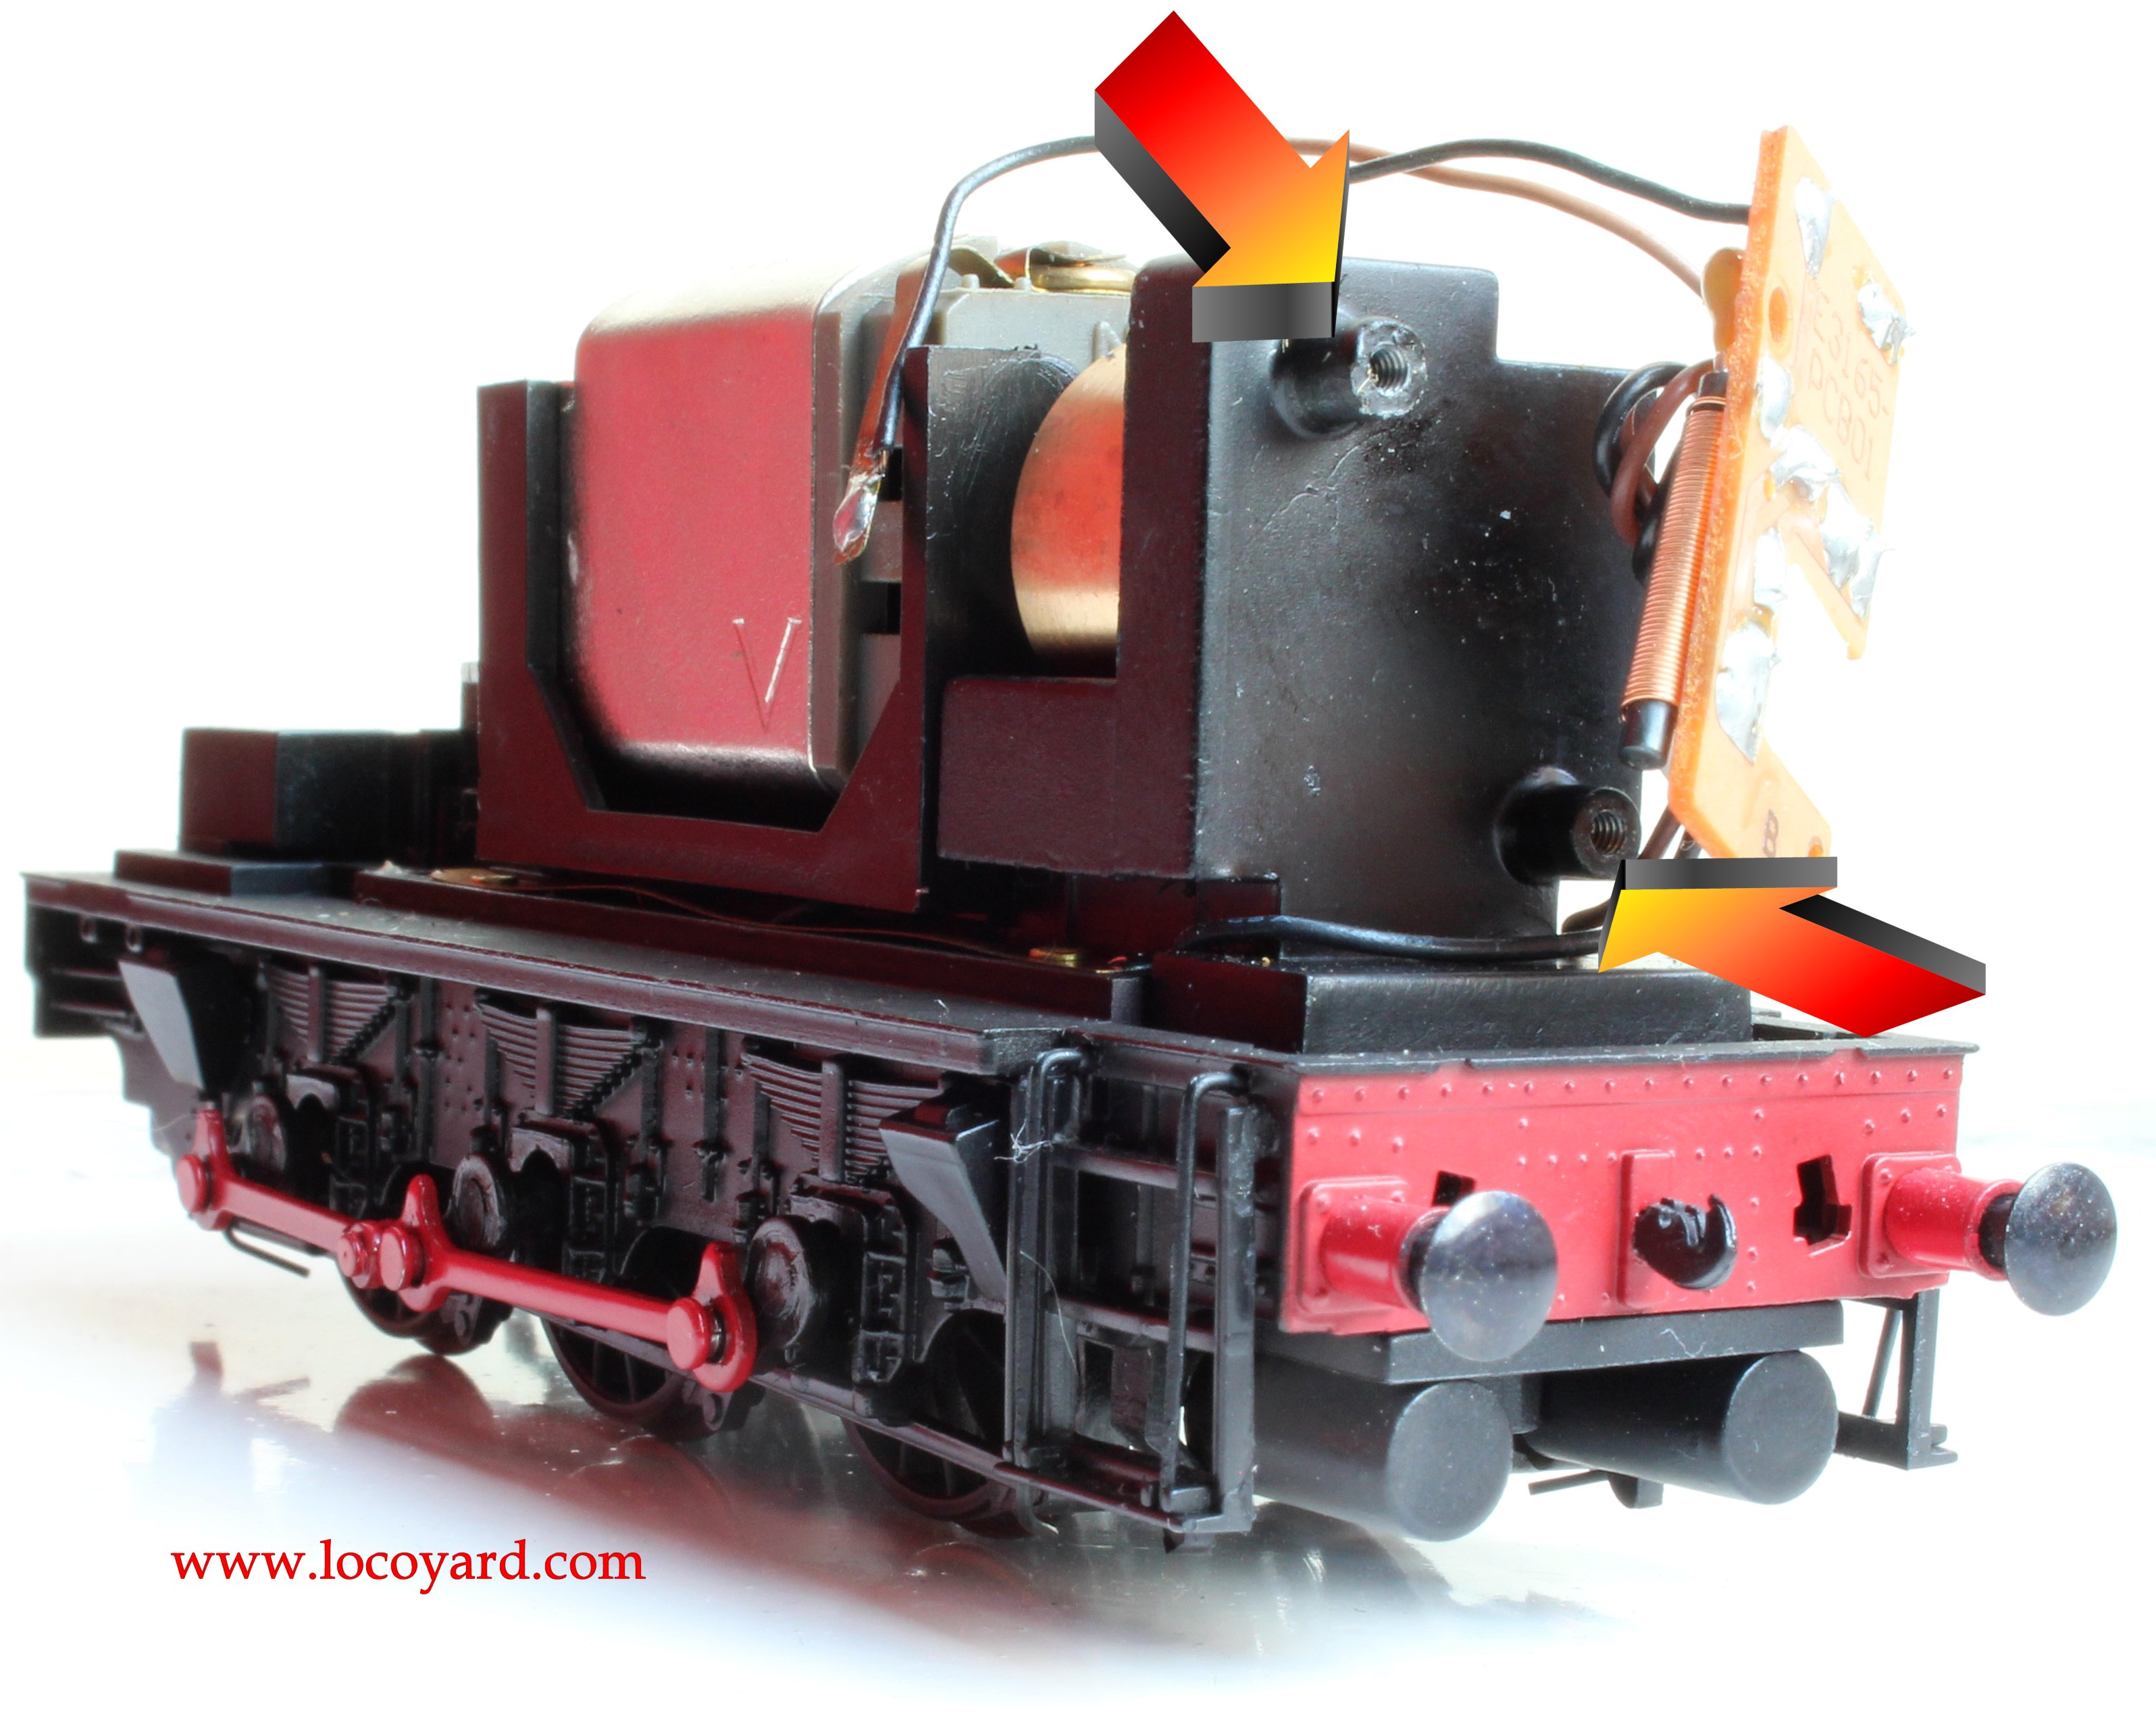 bachmann br class diesel shunter dcc fitting guide non dcc bachmann br class 08 diesel shunter 13029 hard wiring dcc fitting guide